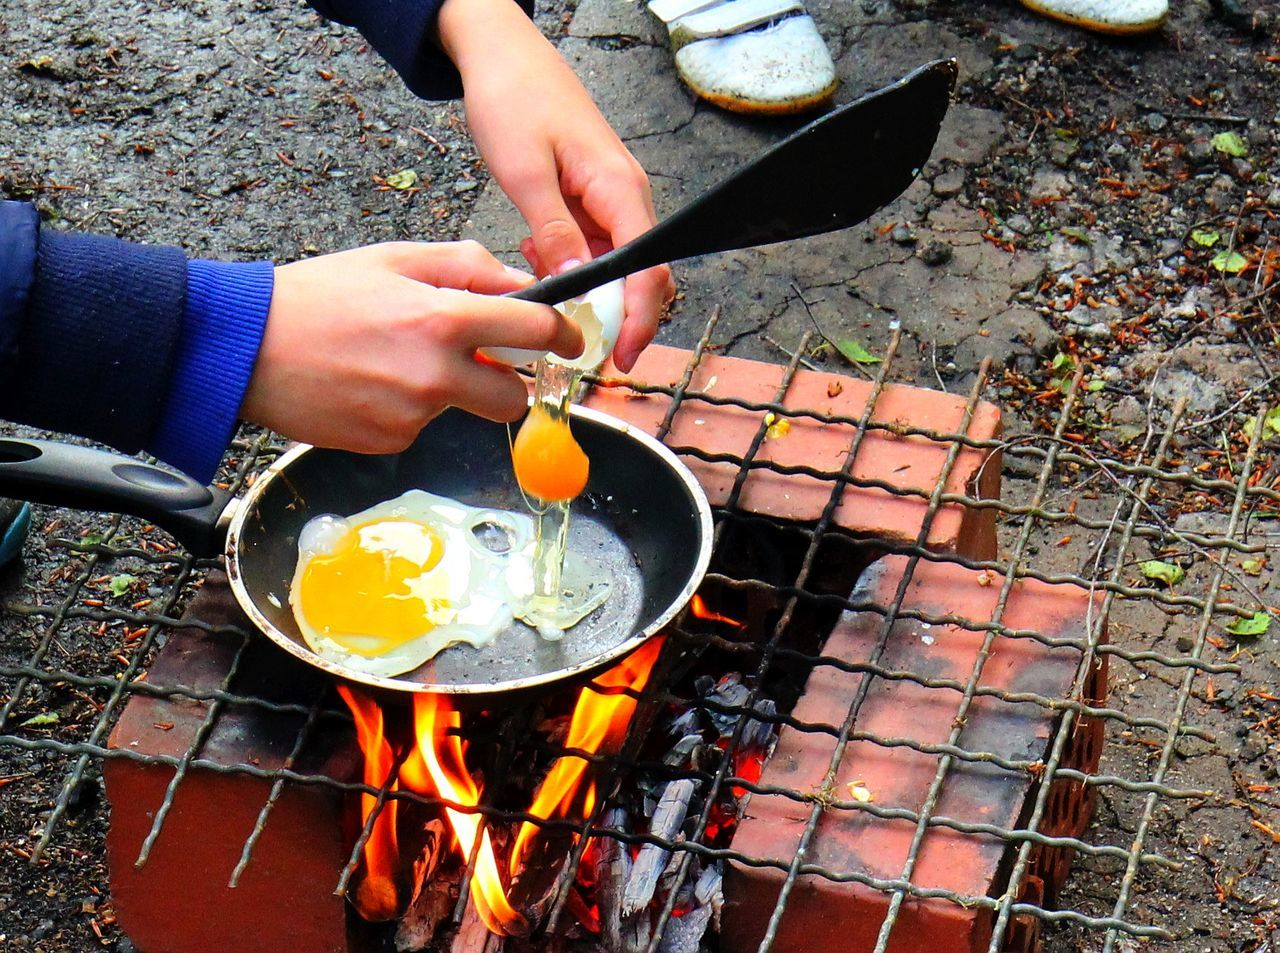 Ash Barbecue Barbecue Grill Burning Camping Close-up Day Eggs Eier Feuer Fire Pit Flame Food Food And Drink Freshness Heat - Temperature High Angle View Holding Human Body Part Human Hand Leisure Activity Outdoors P Preparation  Real People